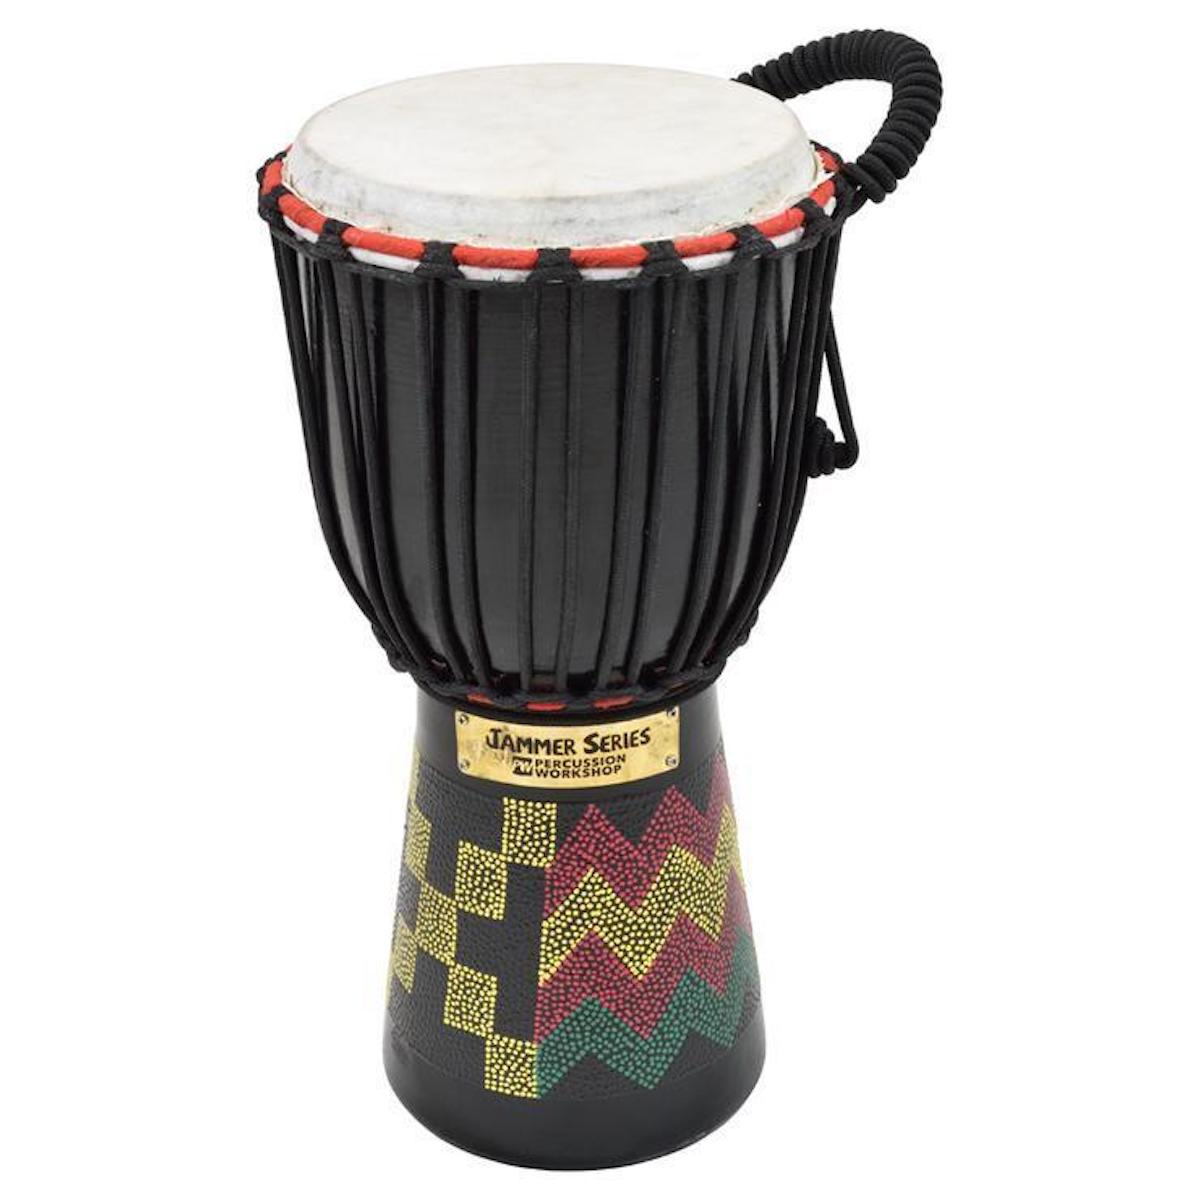 "Percussion Workshop Jammer Djembe, 6"" Head (various designs)"